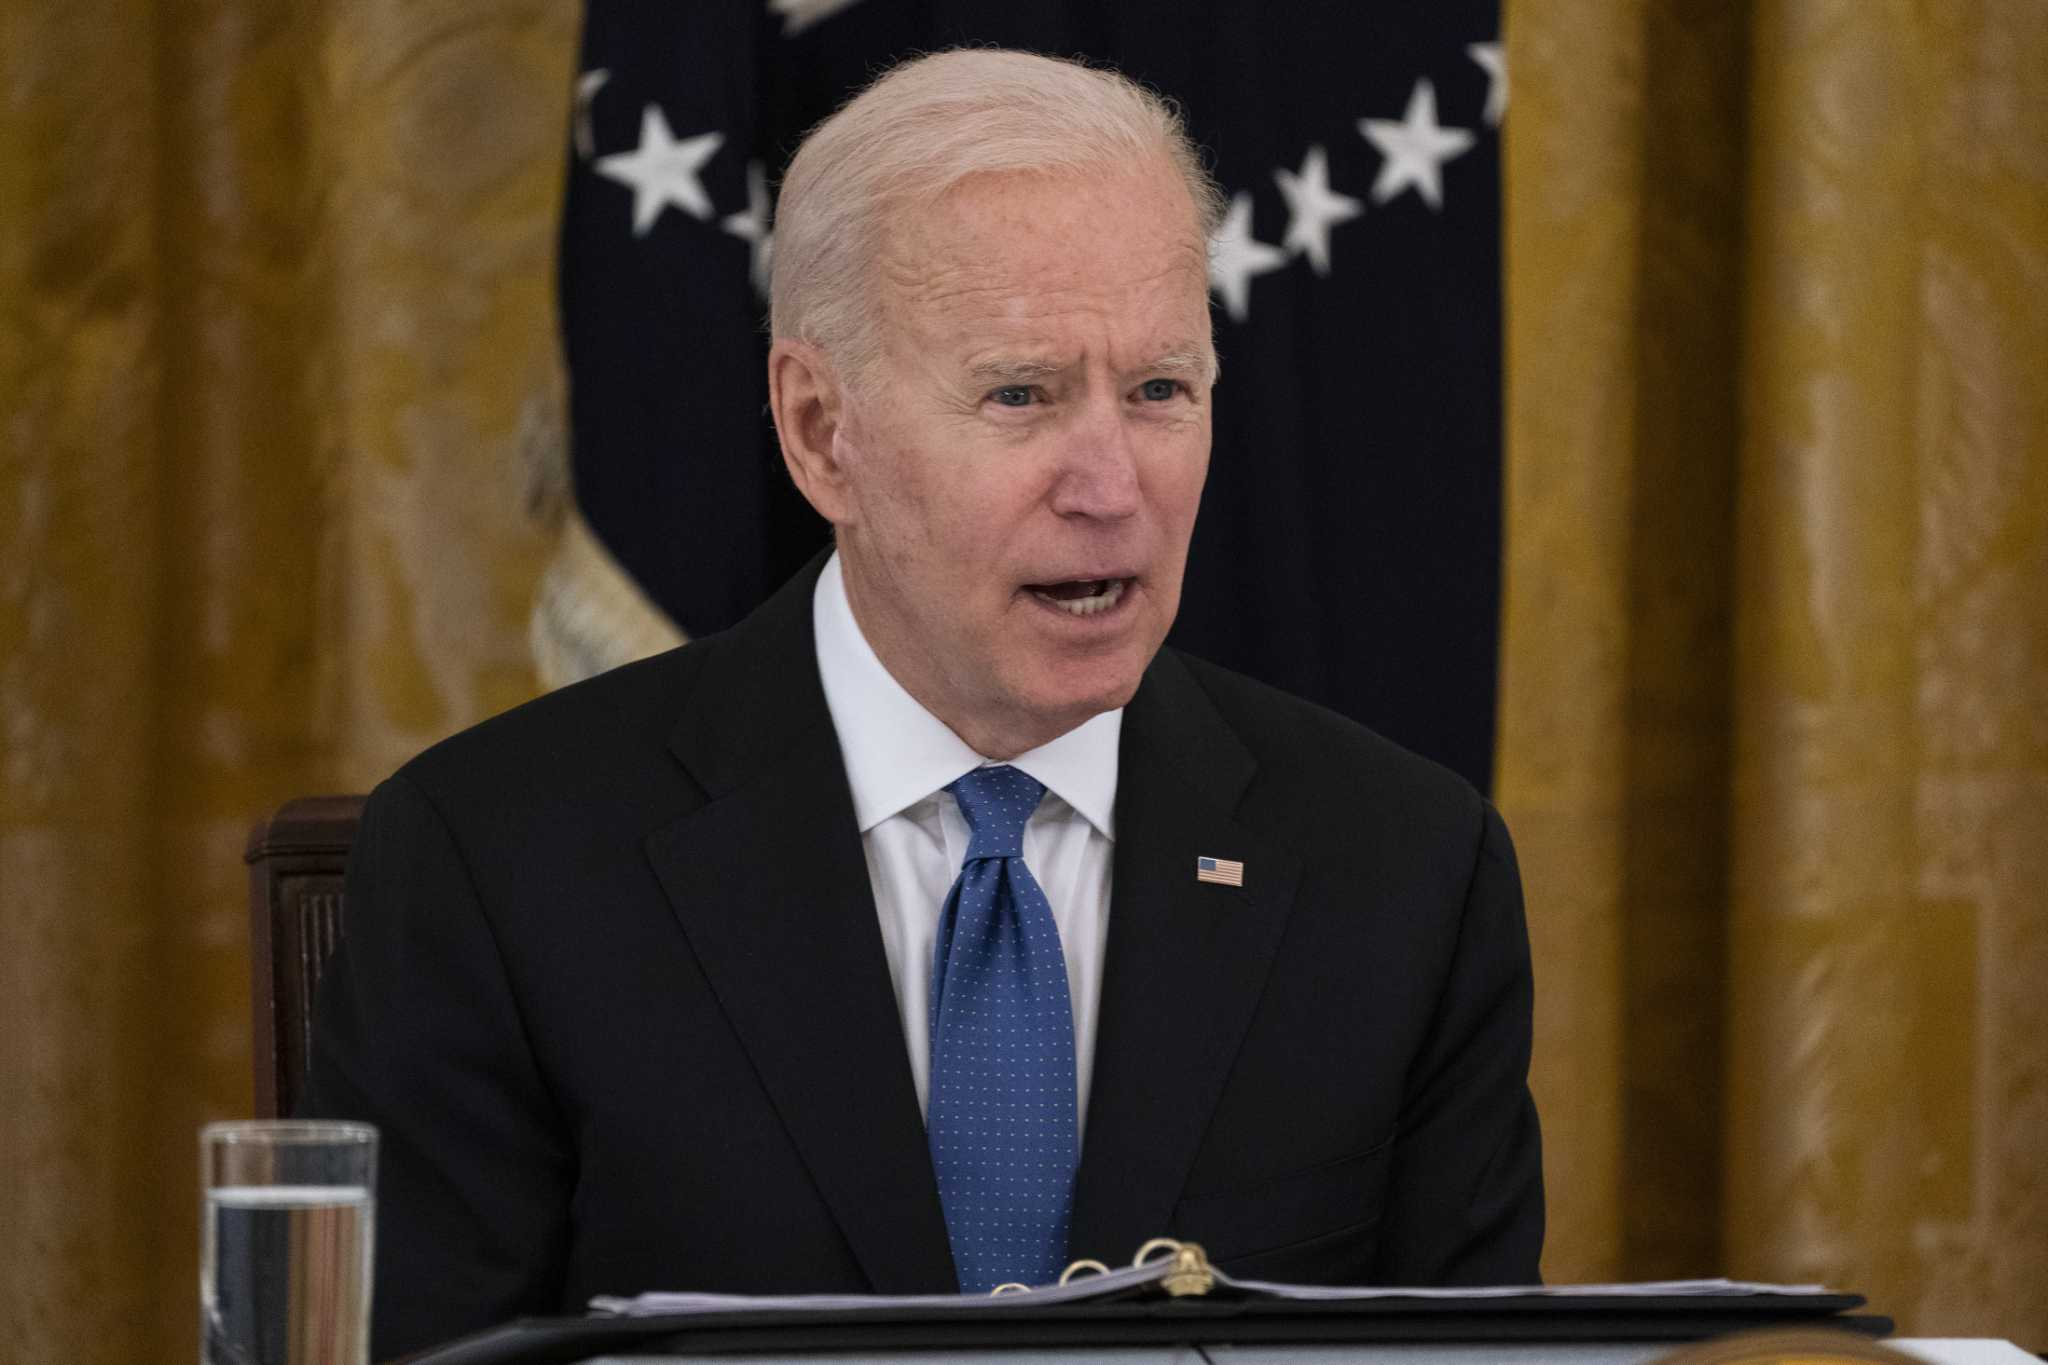 US President Joe Biden asks Congress to allocate $715 billion to the Pentagon to counter Russia and China